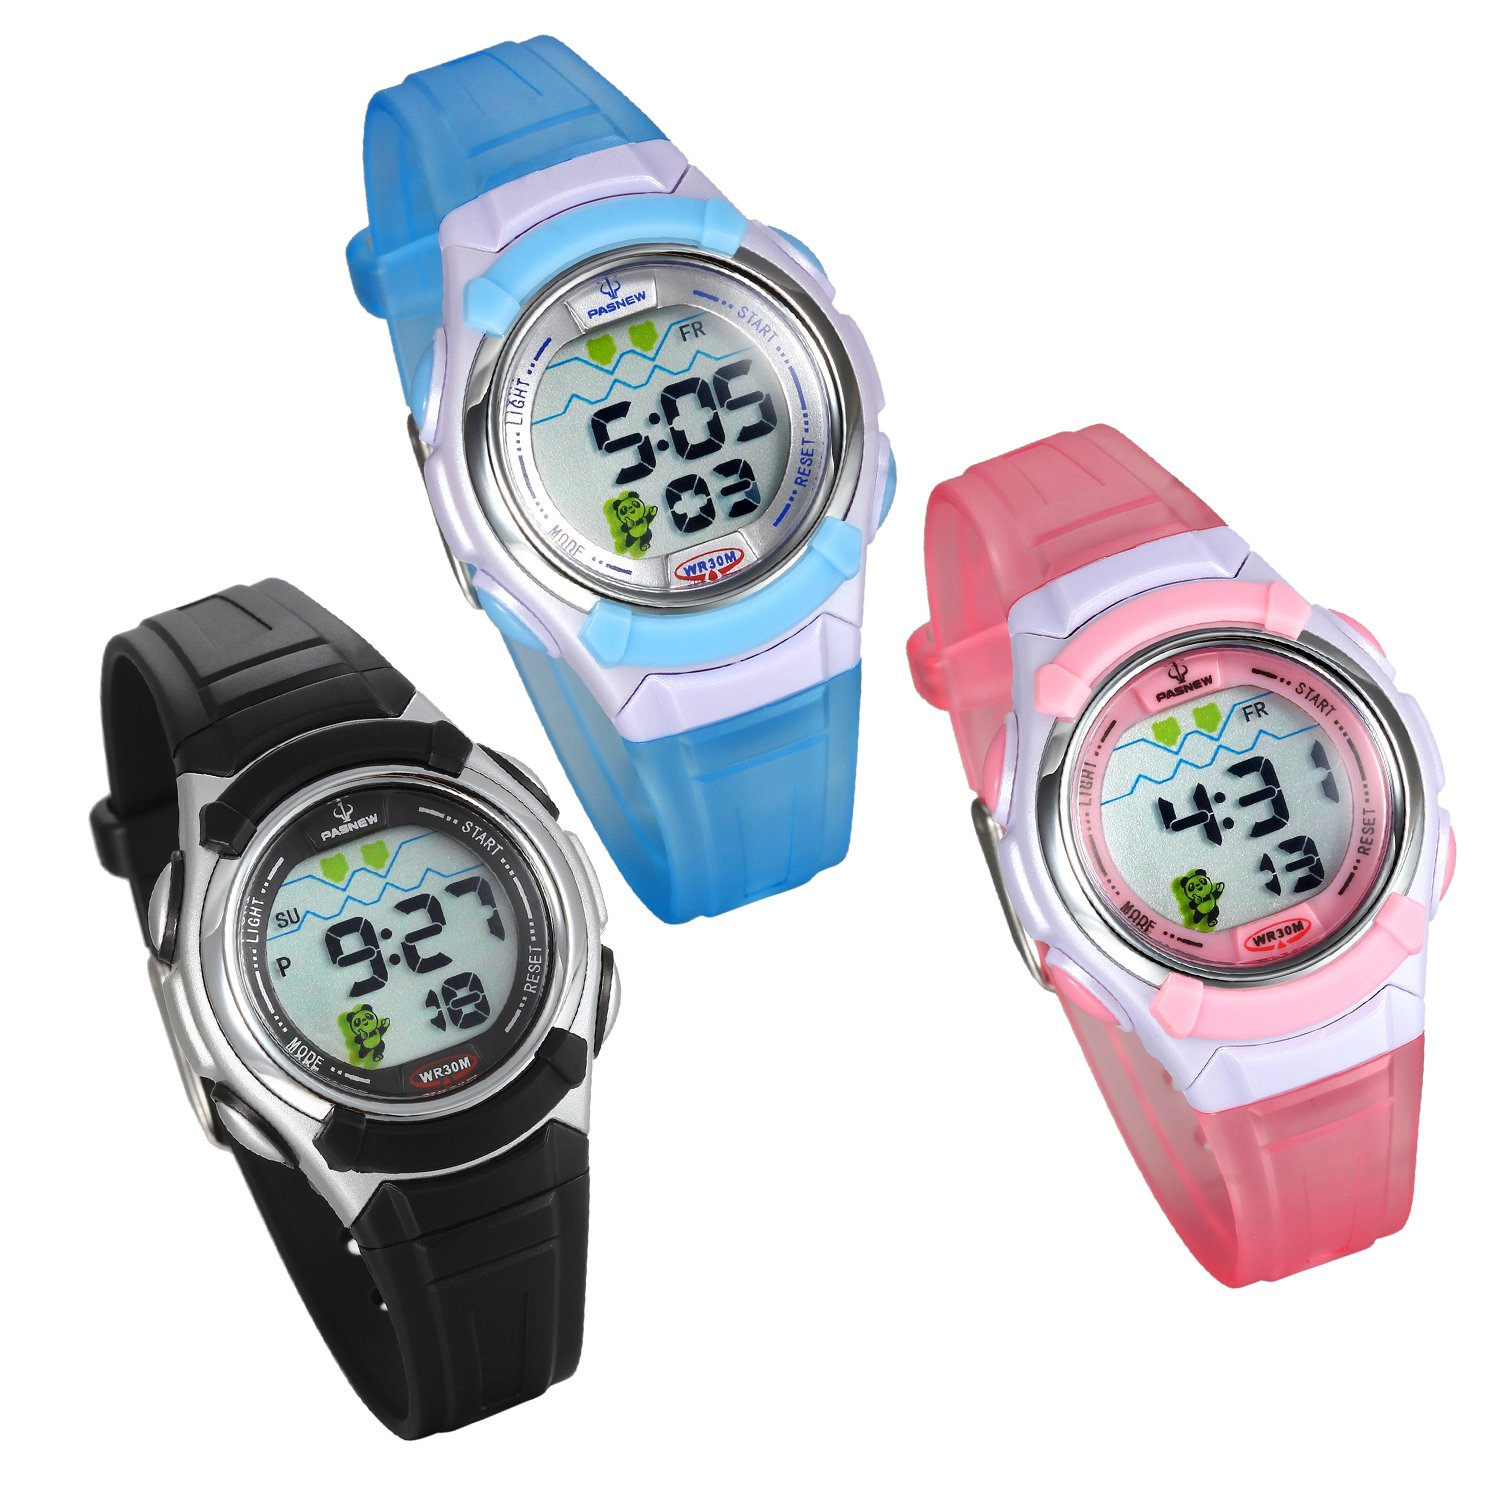 Amazon.com: Lancardo 30M Water Resistan Students Digital Sport Train Wrist Watch(3Pcs): Watches